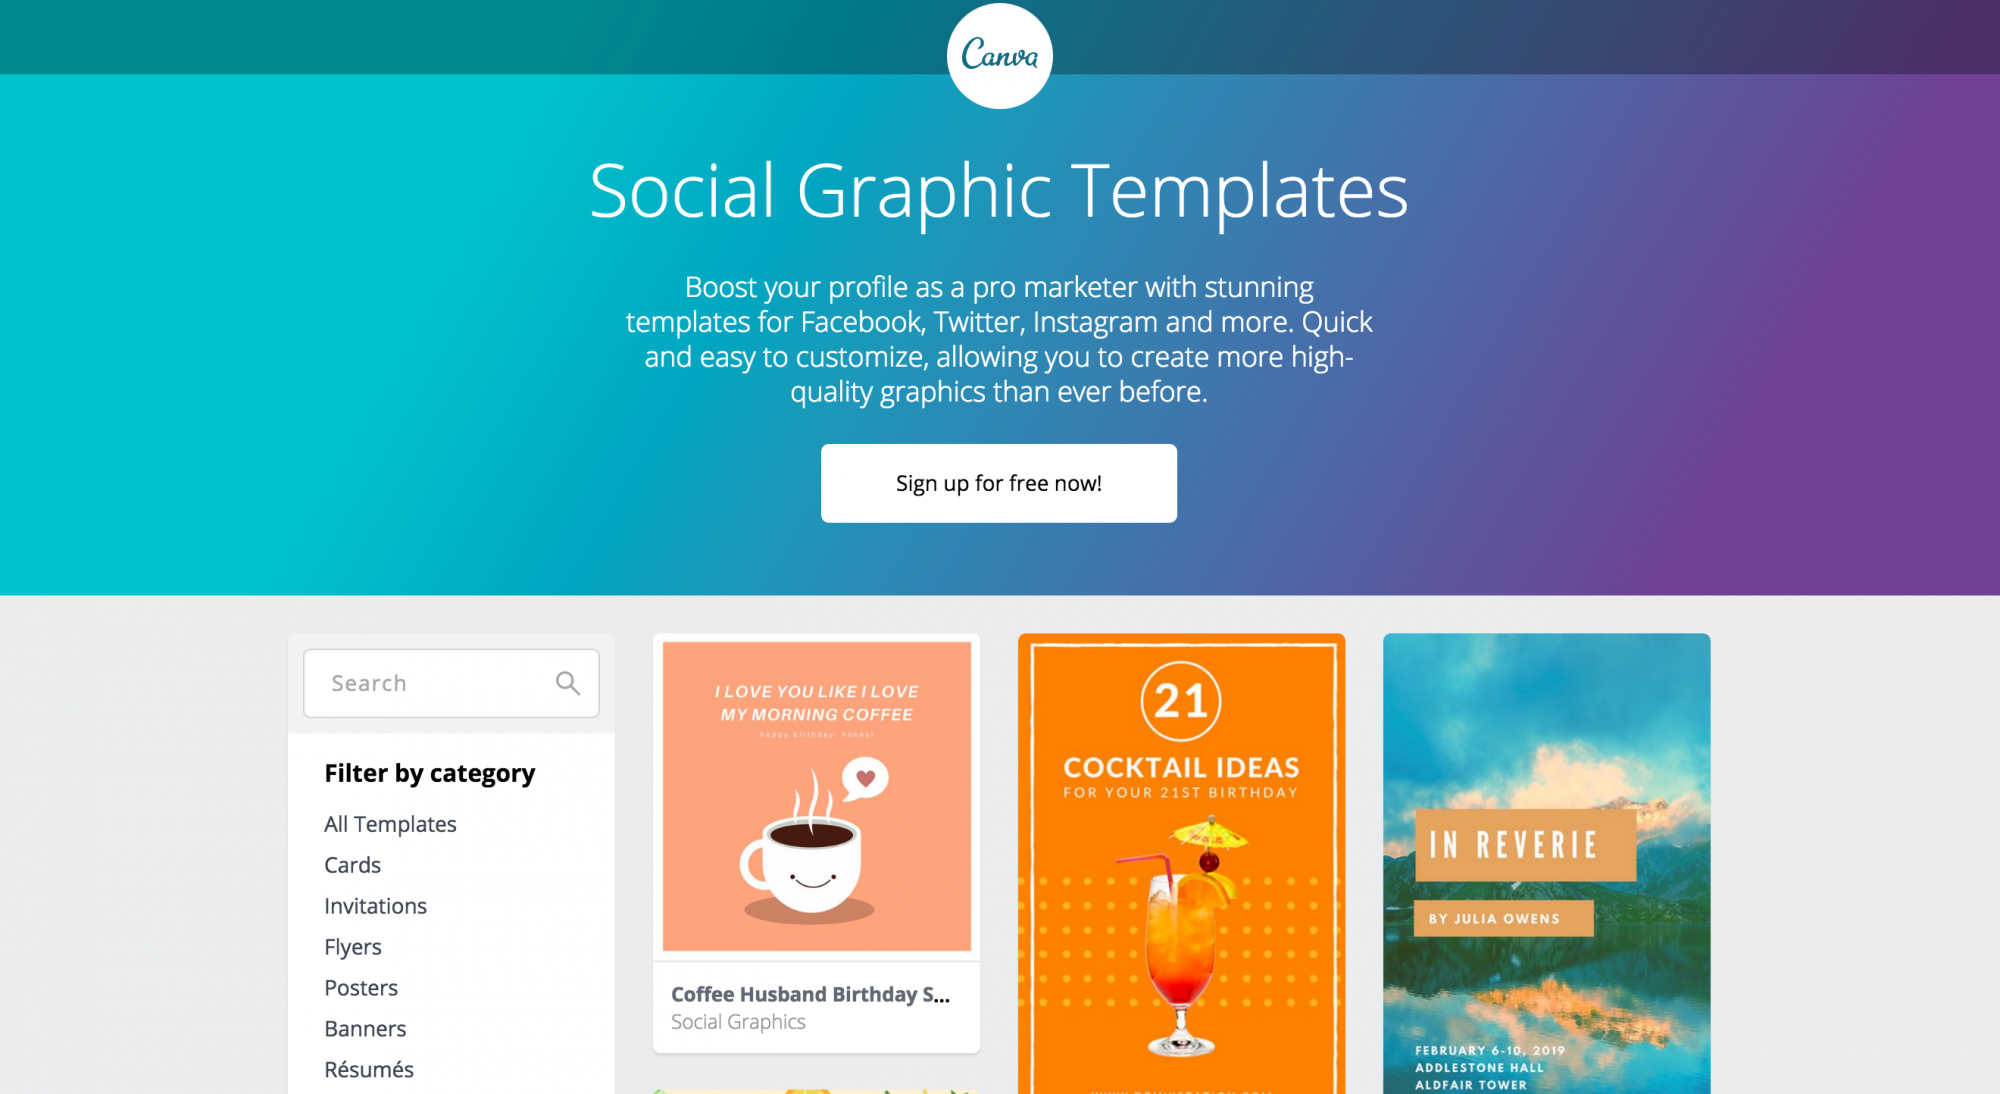 Social Graphic Templates by Canva